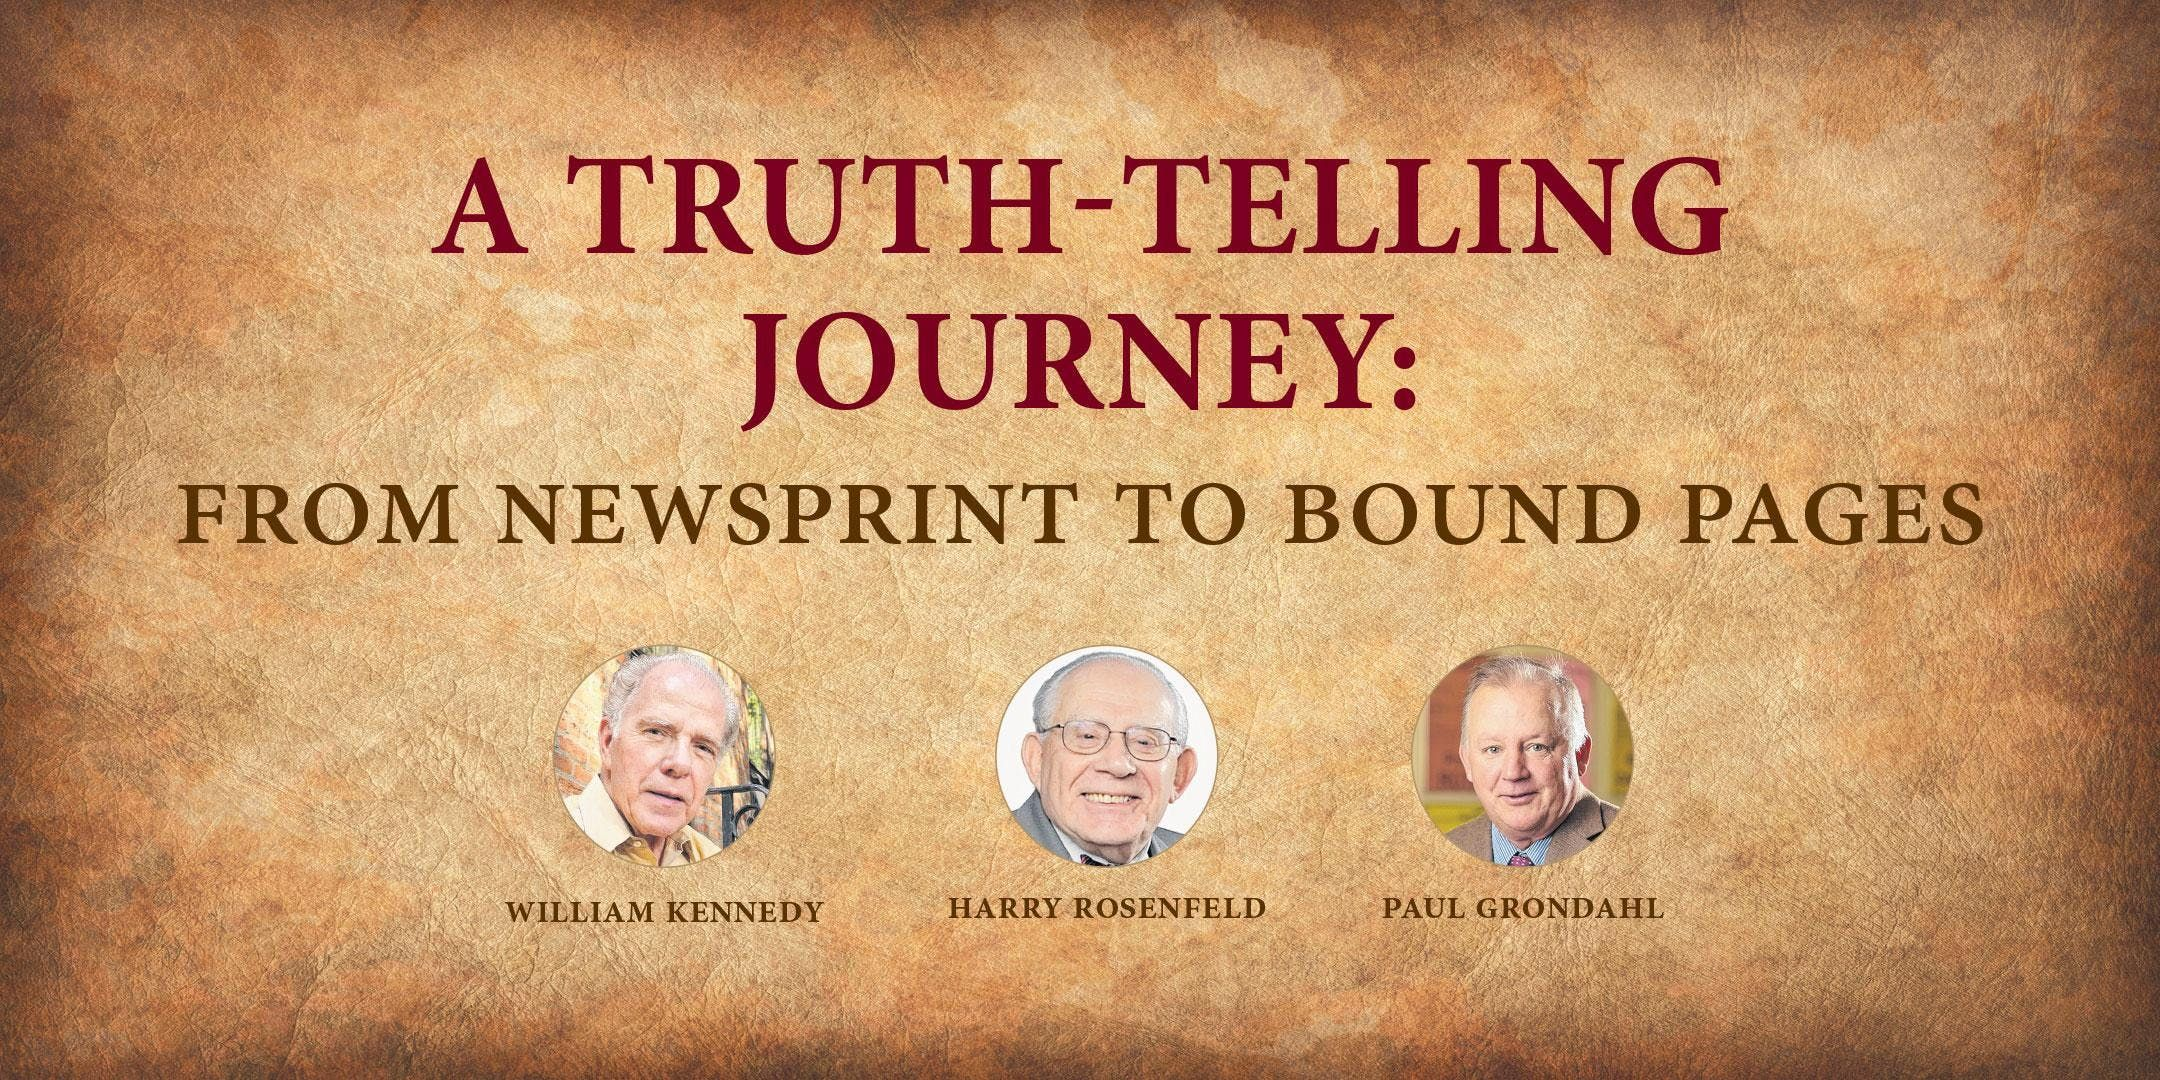 A Truth-telling Journey From Newsprint to Bound Pages